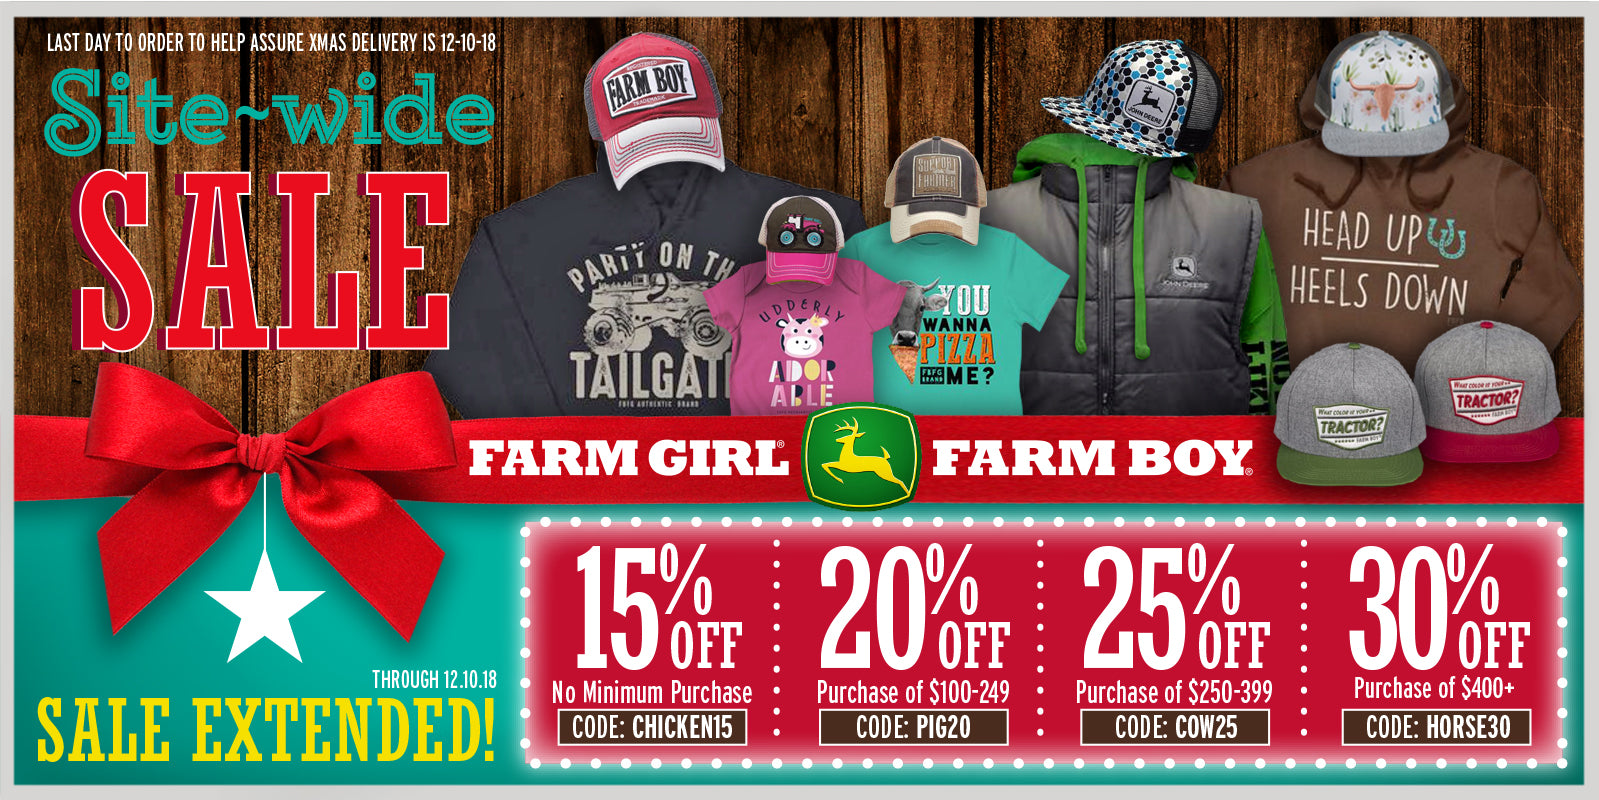 SHOP> FARM BOY | FARM GIRL